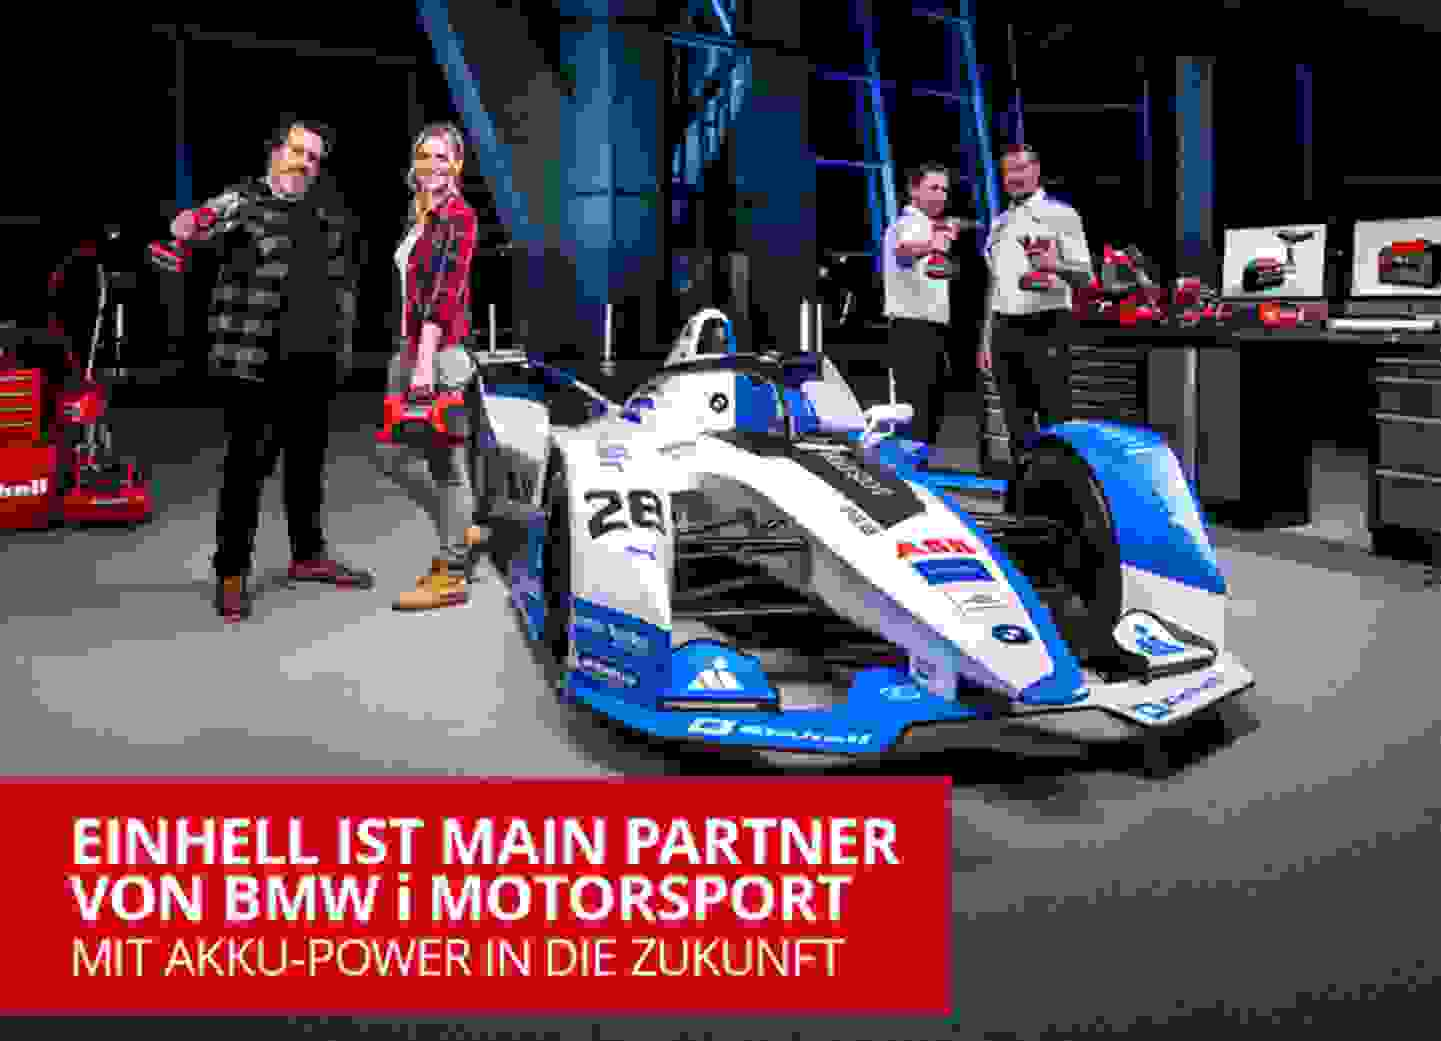 Main Partner von BMW i Motorsport